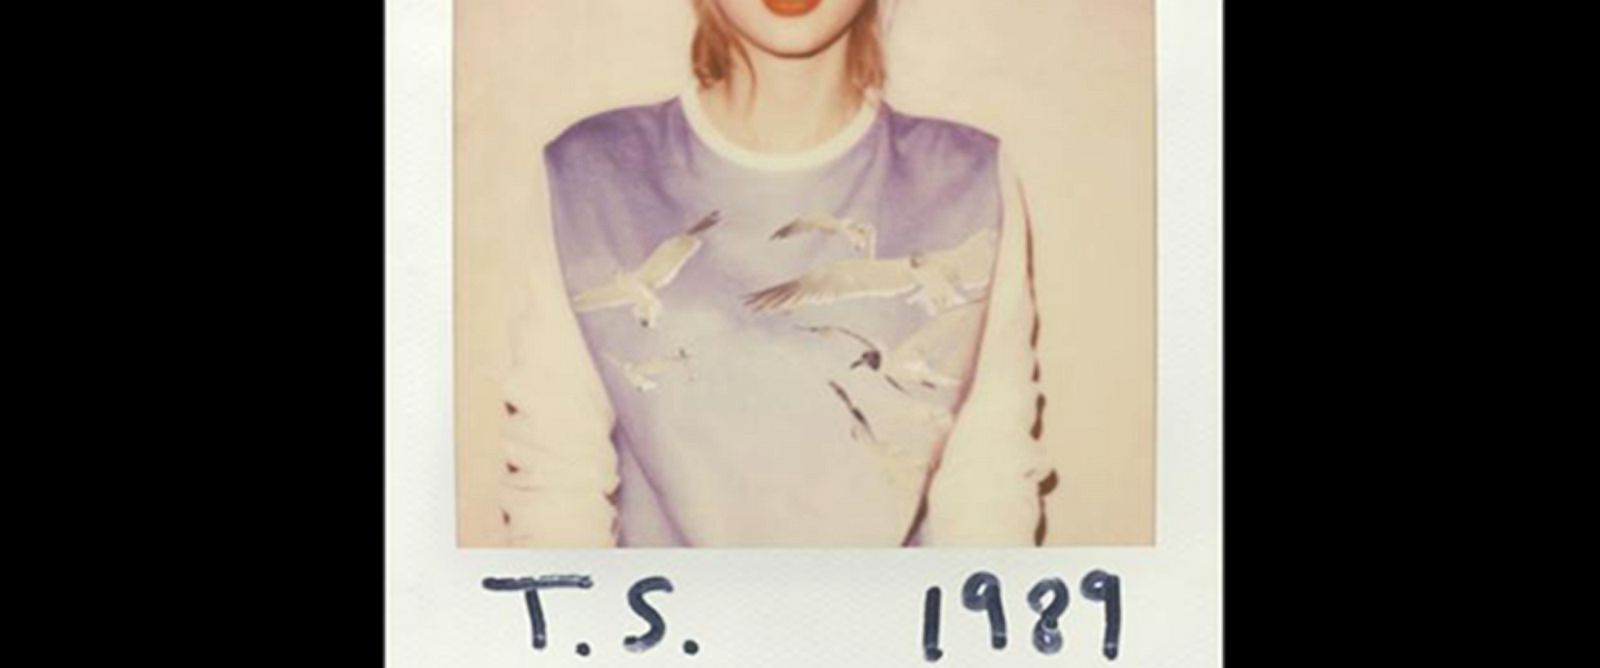 PHOTO: Taylor Swift new album 1989.